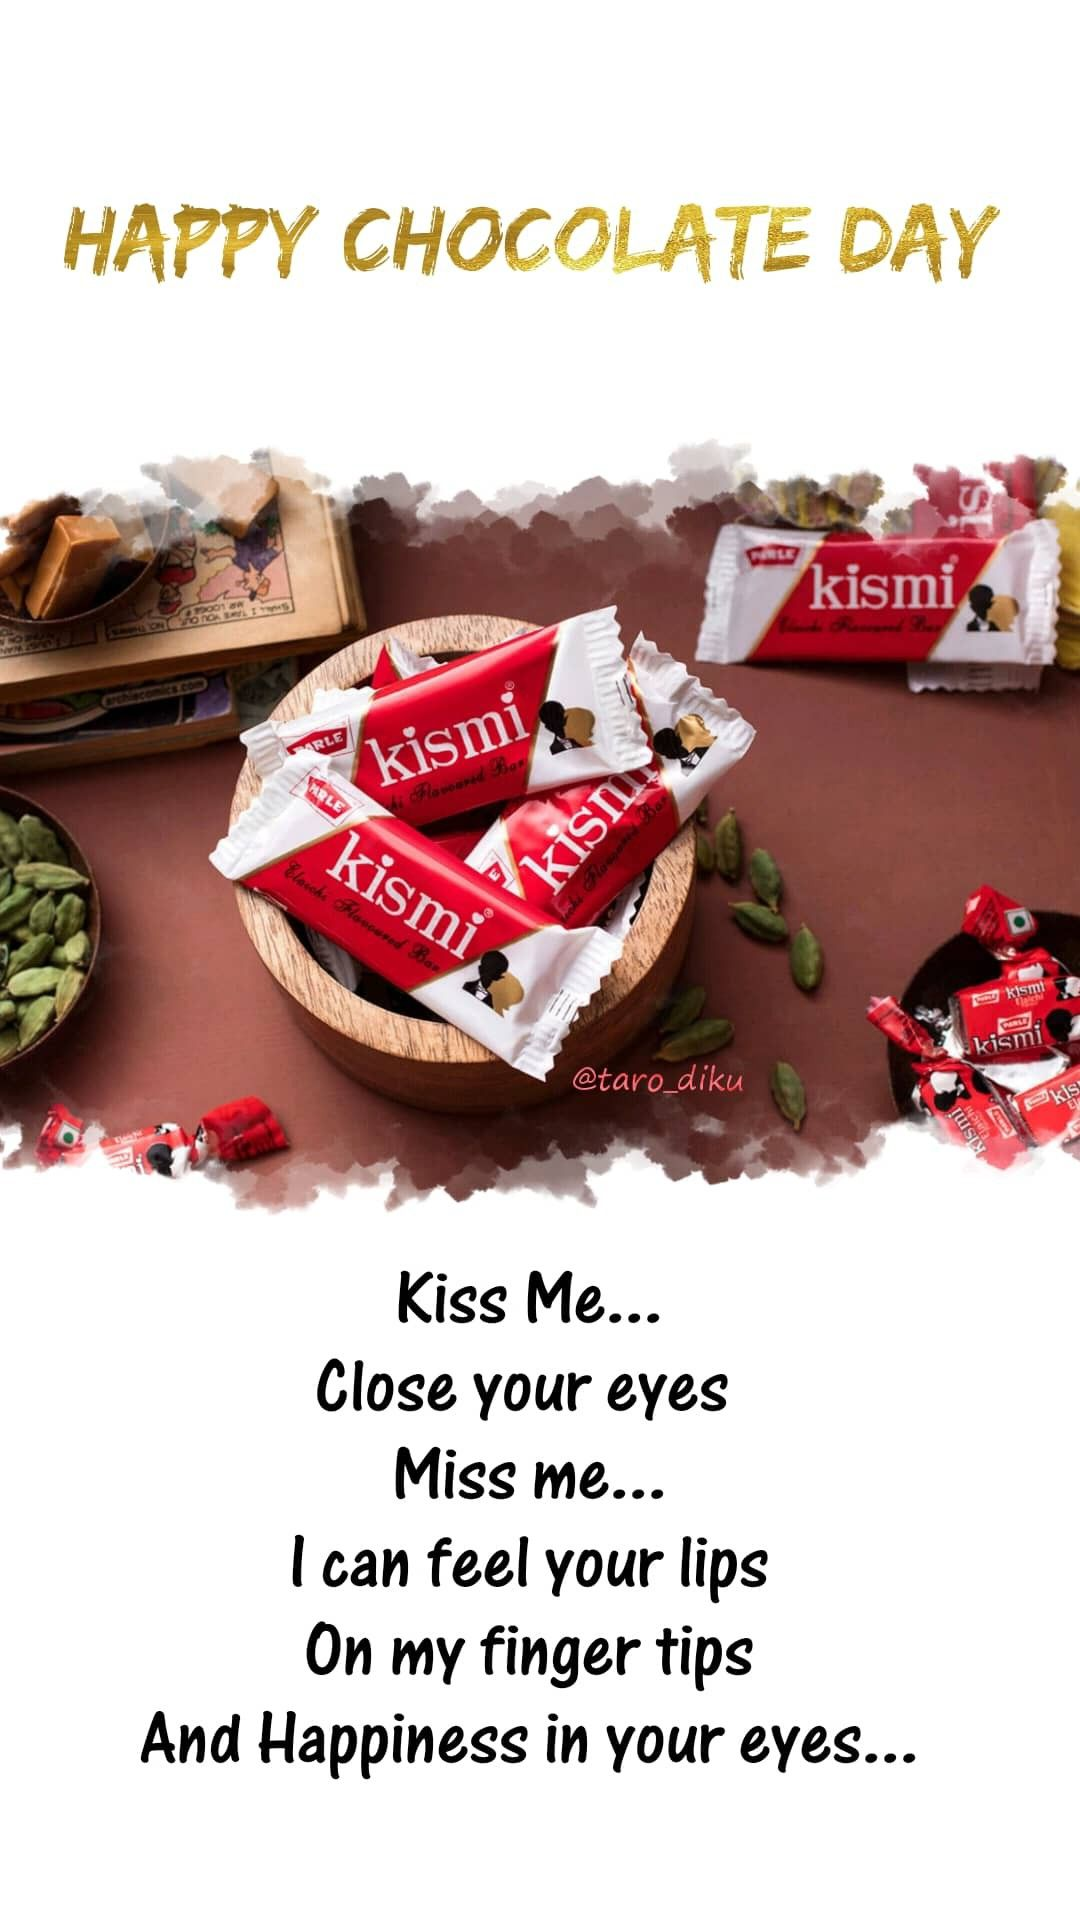 Pin By Aryaa Heet On Aryaheet In 2021 Happy Chocolate Day Chocolate Day Food